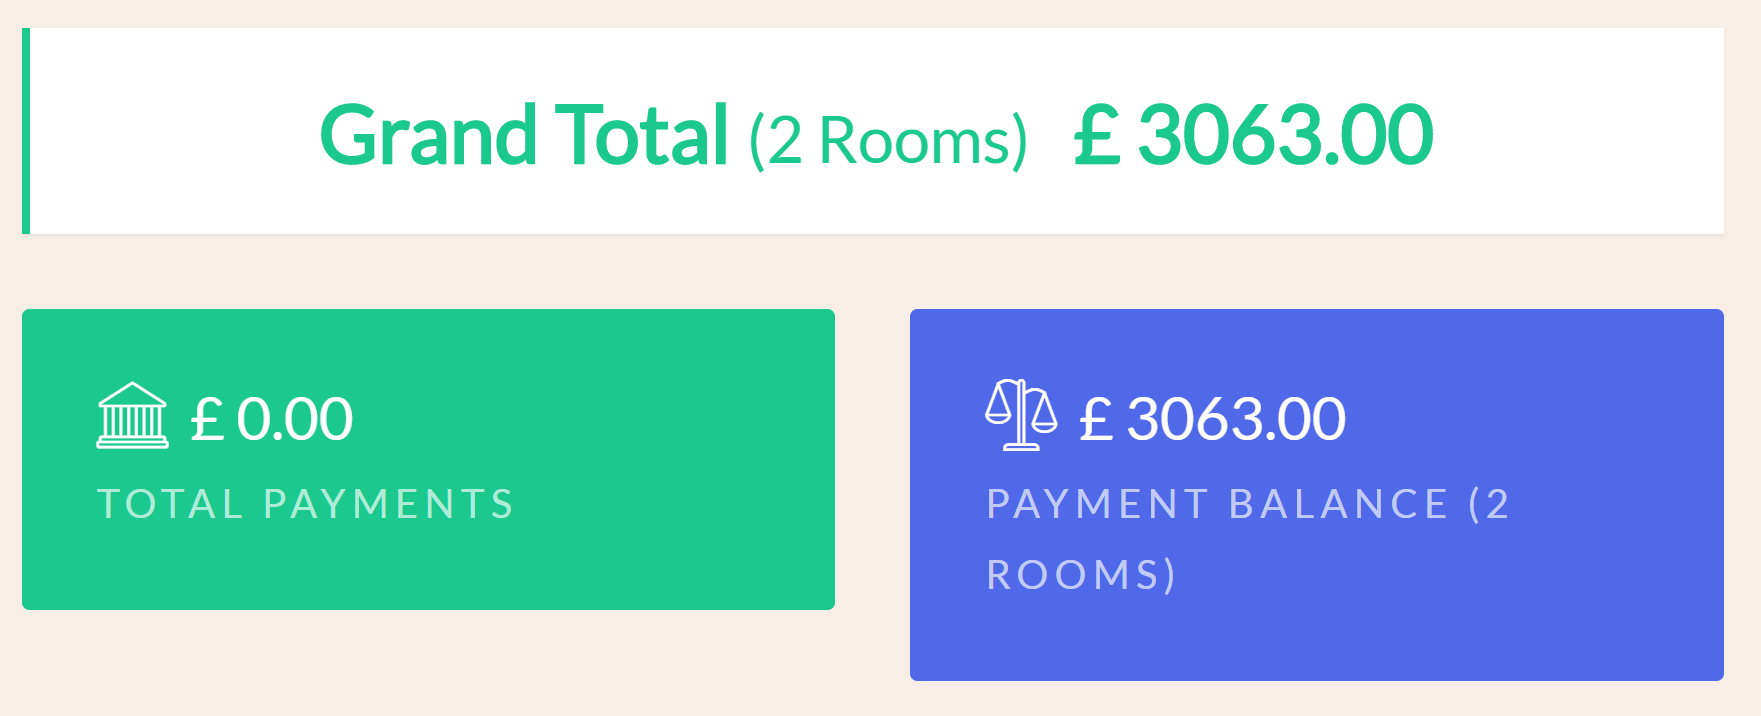 If you cancel the main room in the group, all the additional rooms will be cancelled as well. This way you can cancel the entire booking at once. Just note that the cancellation fee, if any, should take into account the 'Grand Total' for all the rooms in the group.